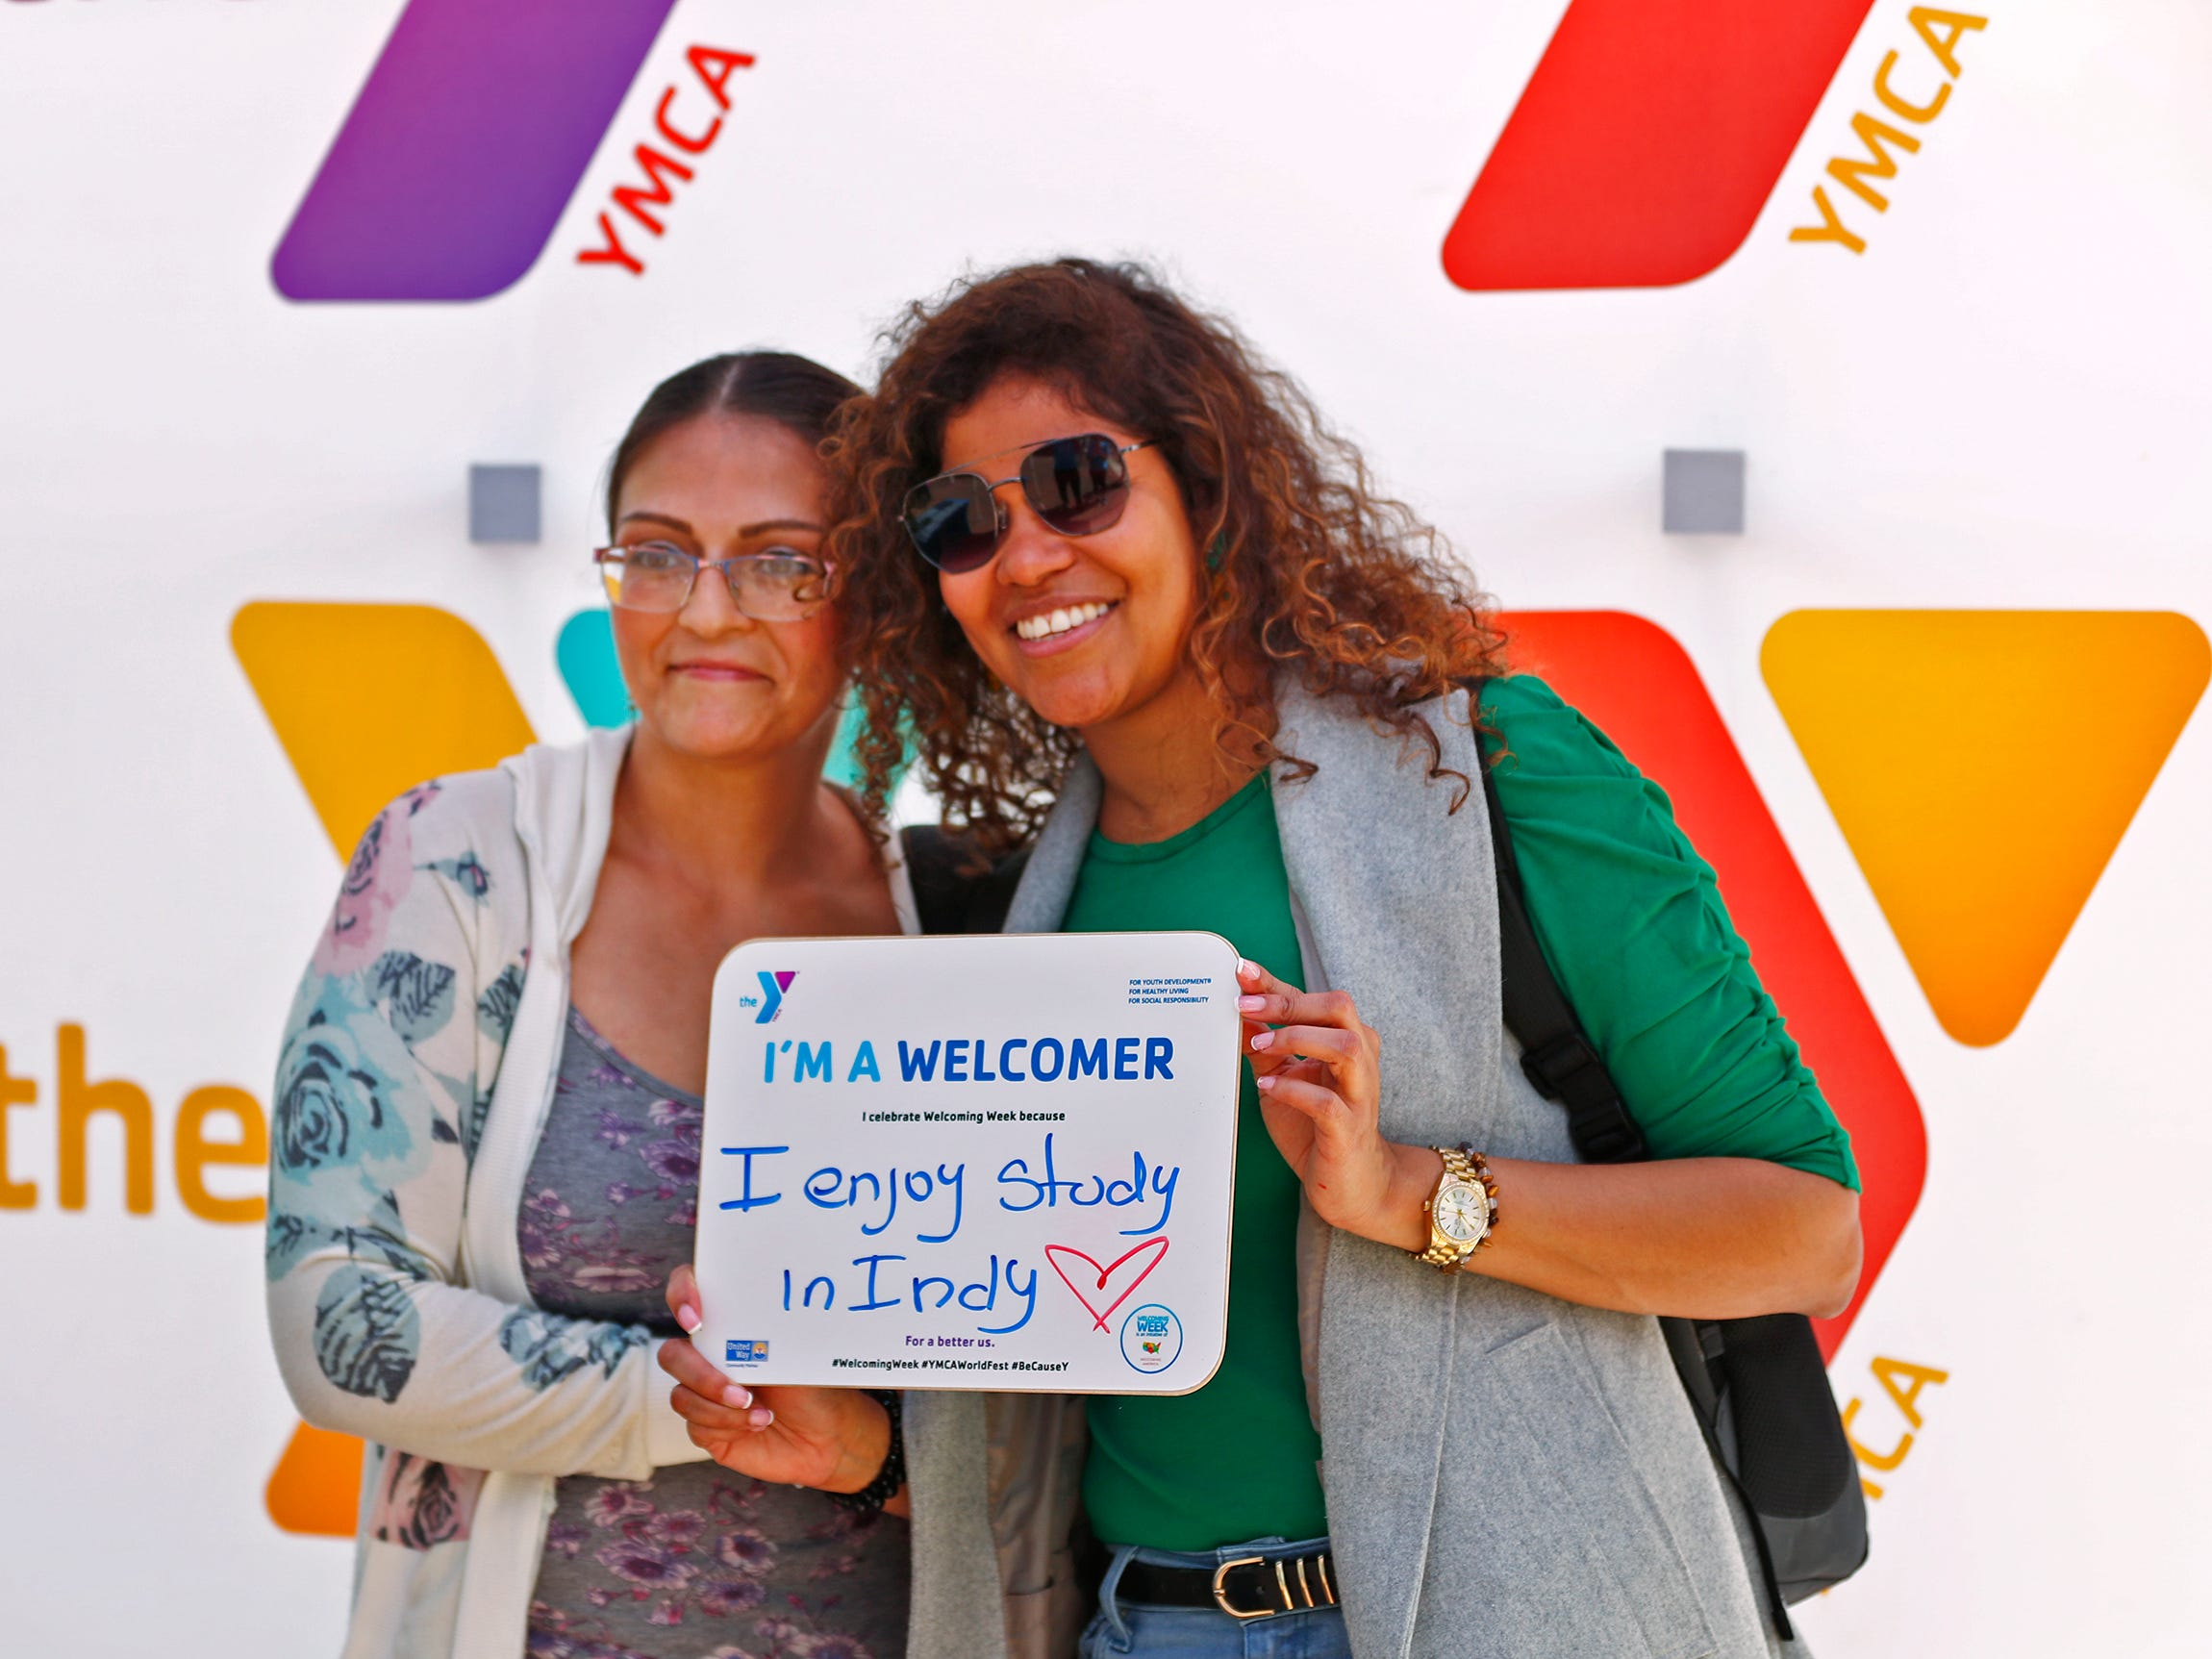 English Language Center (ESL) students Diana Moreno, left, and Margareta Sanchez pose for a photo during the YMCA World Fest, on Monument Circle, Thursday, Sept. 13, 2018. YMCA of Greater Indianapolis hosts the free event that celebrates cultures including international food vendors, music, sports, and performers.